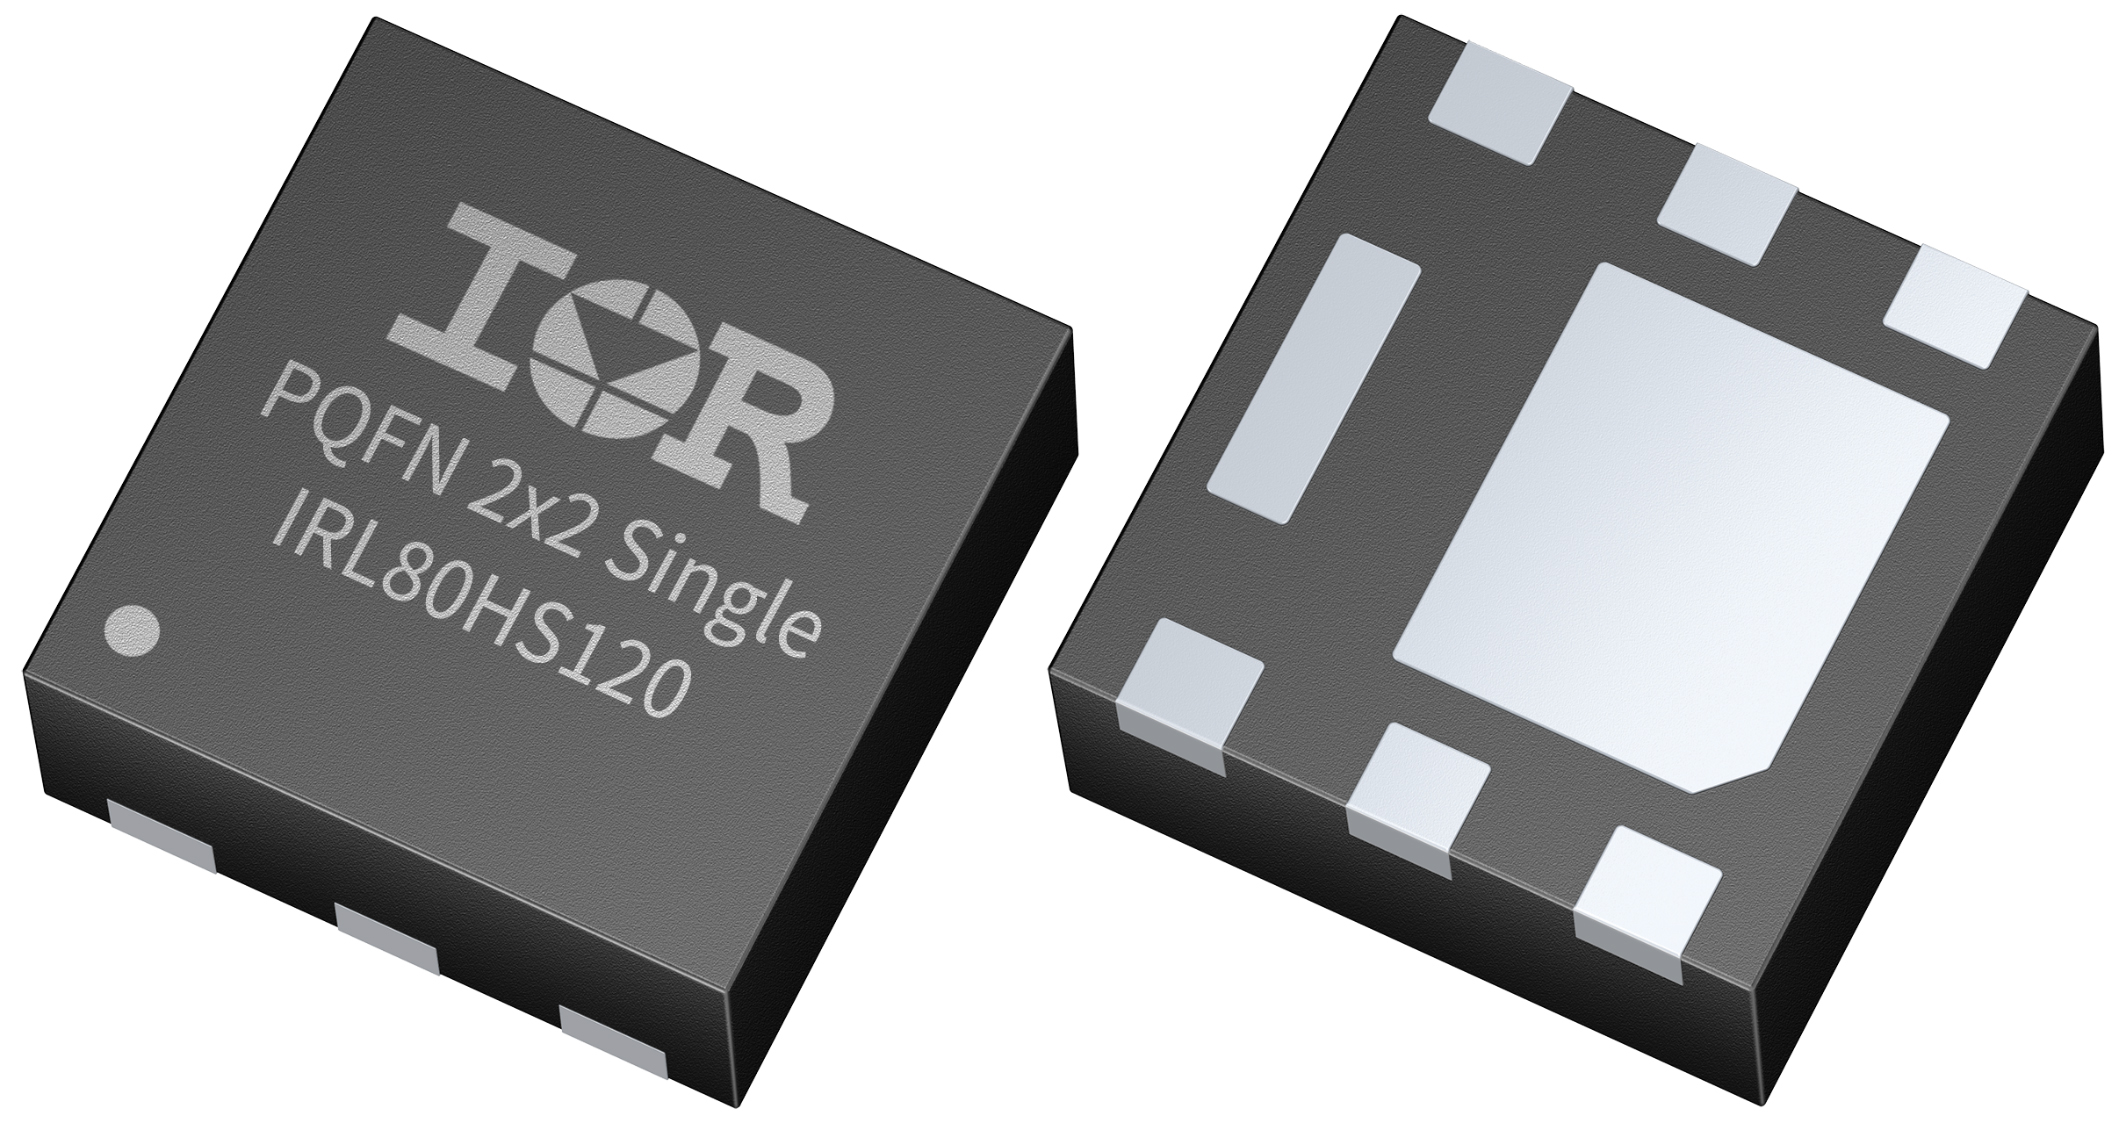 New logic level MOSFETs in PQFN package deliver high power density